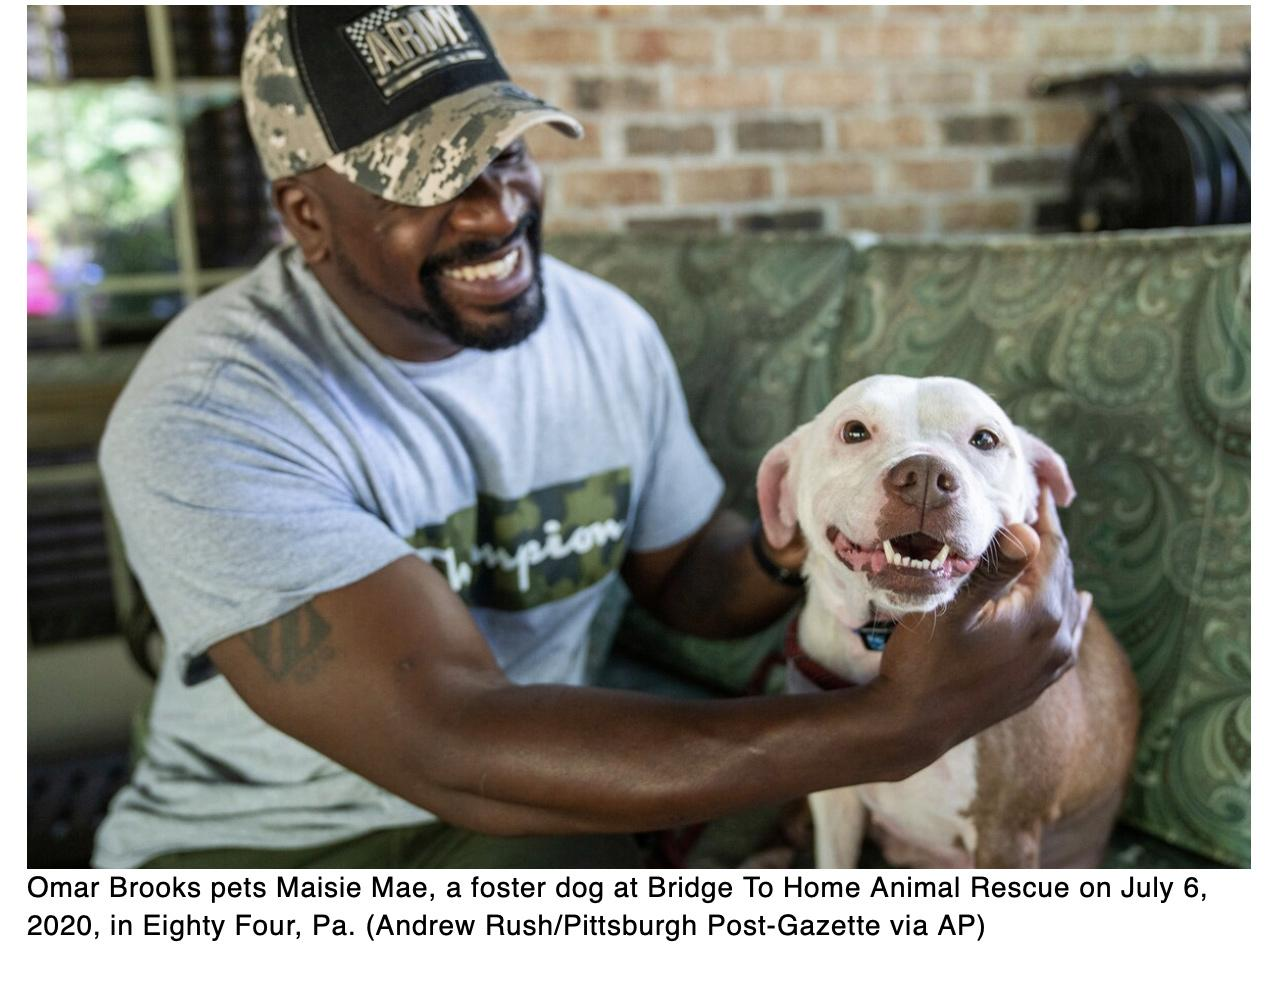 Army vet finds peace fostering pets, finding them homes